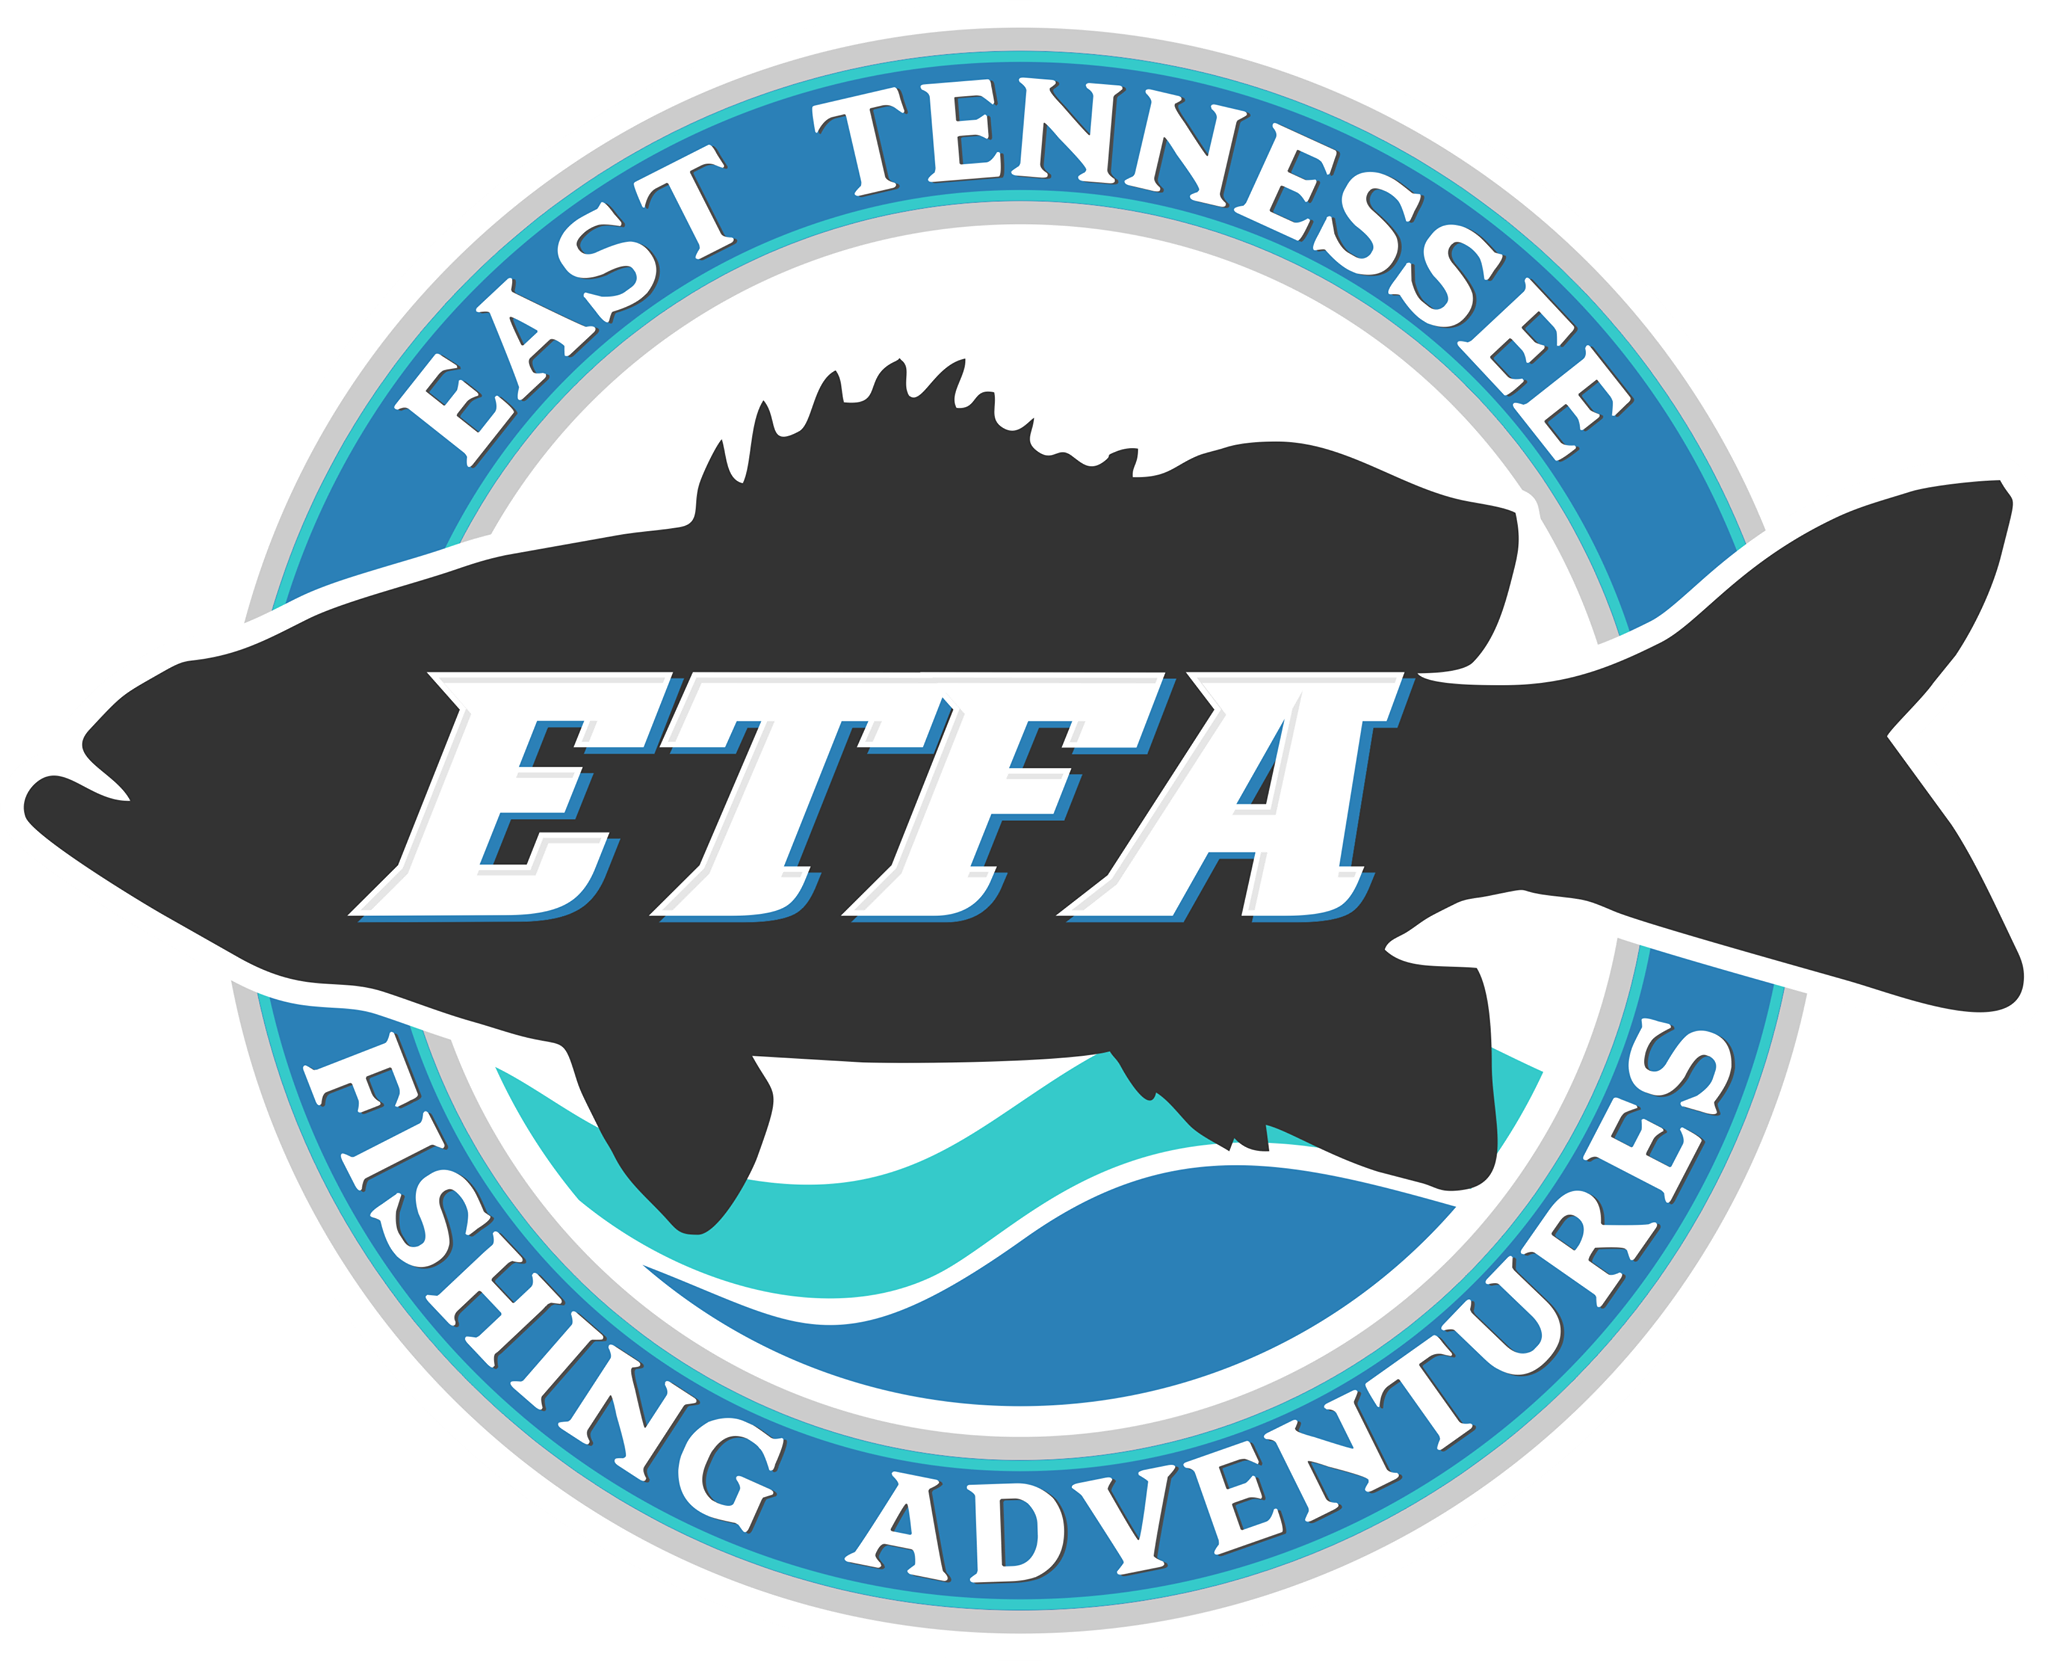 East Tennessee Fishing Adventures